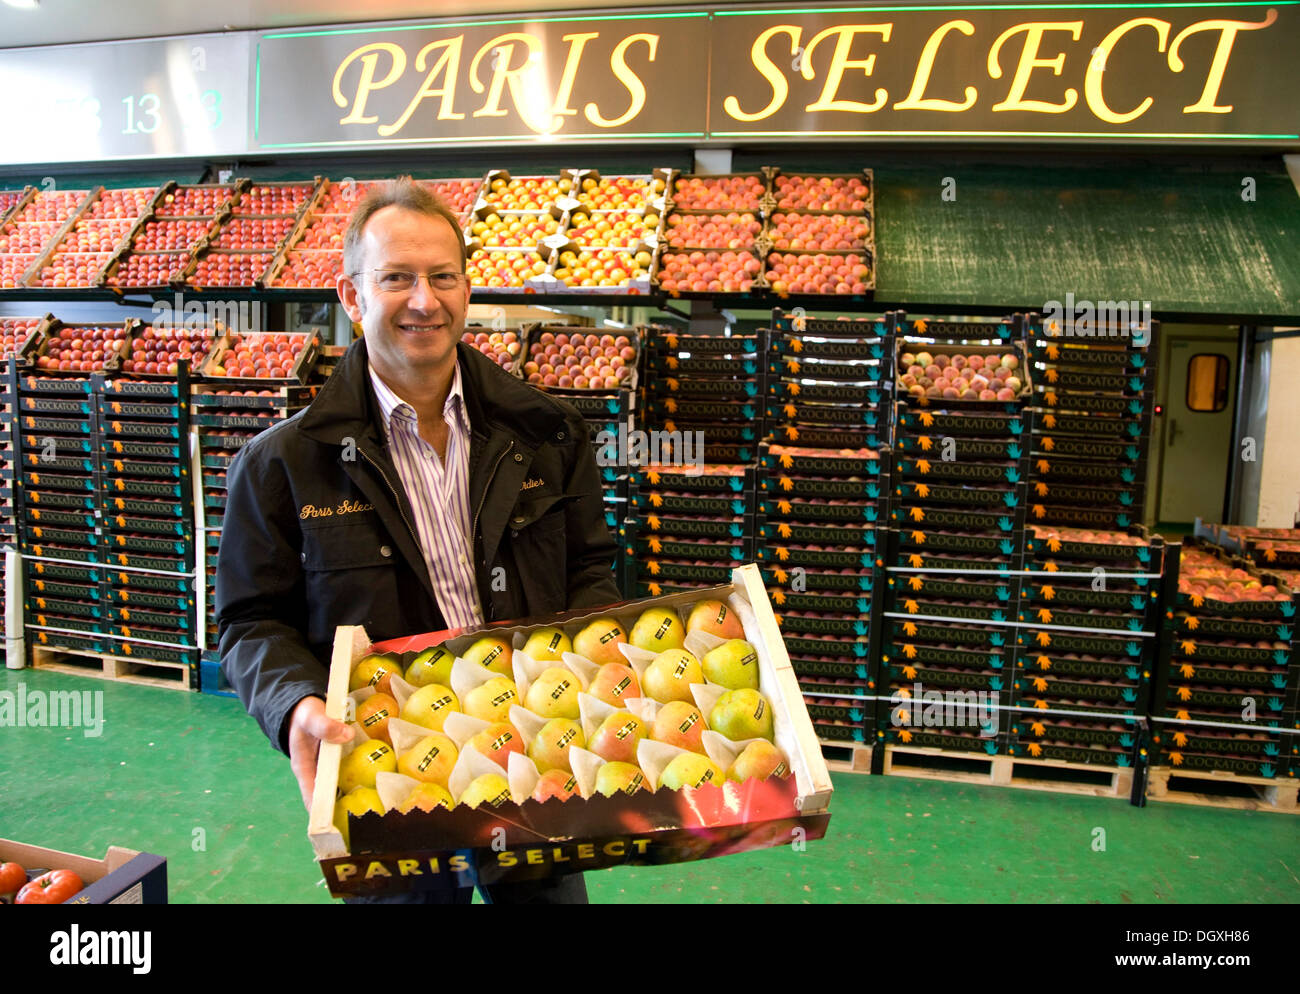 Didier IOLI, head of PARIS SELECT, Pavillon des Fruits et Legumes, fruit and vegetable hall, Rungis wholesale market - Stock Image